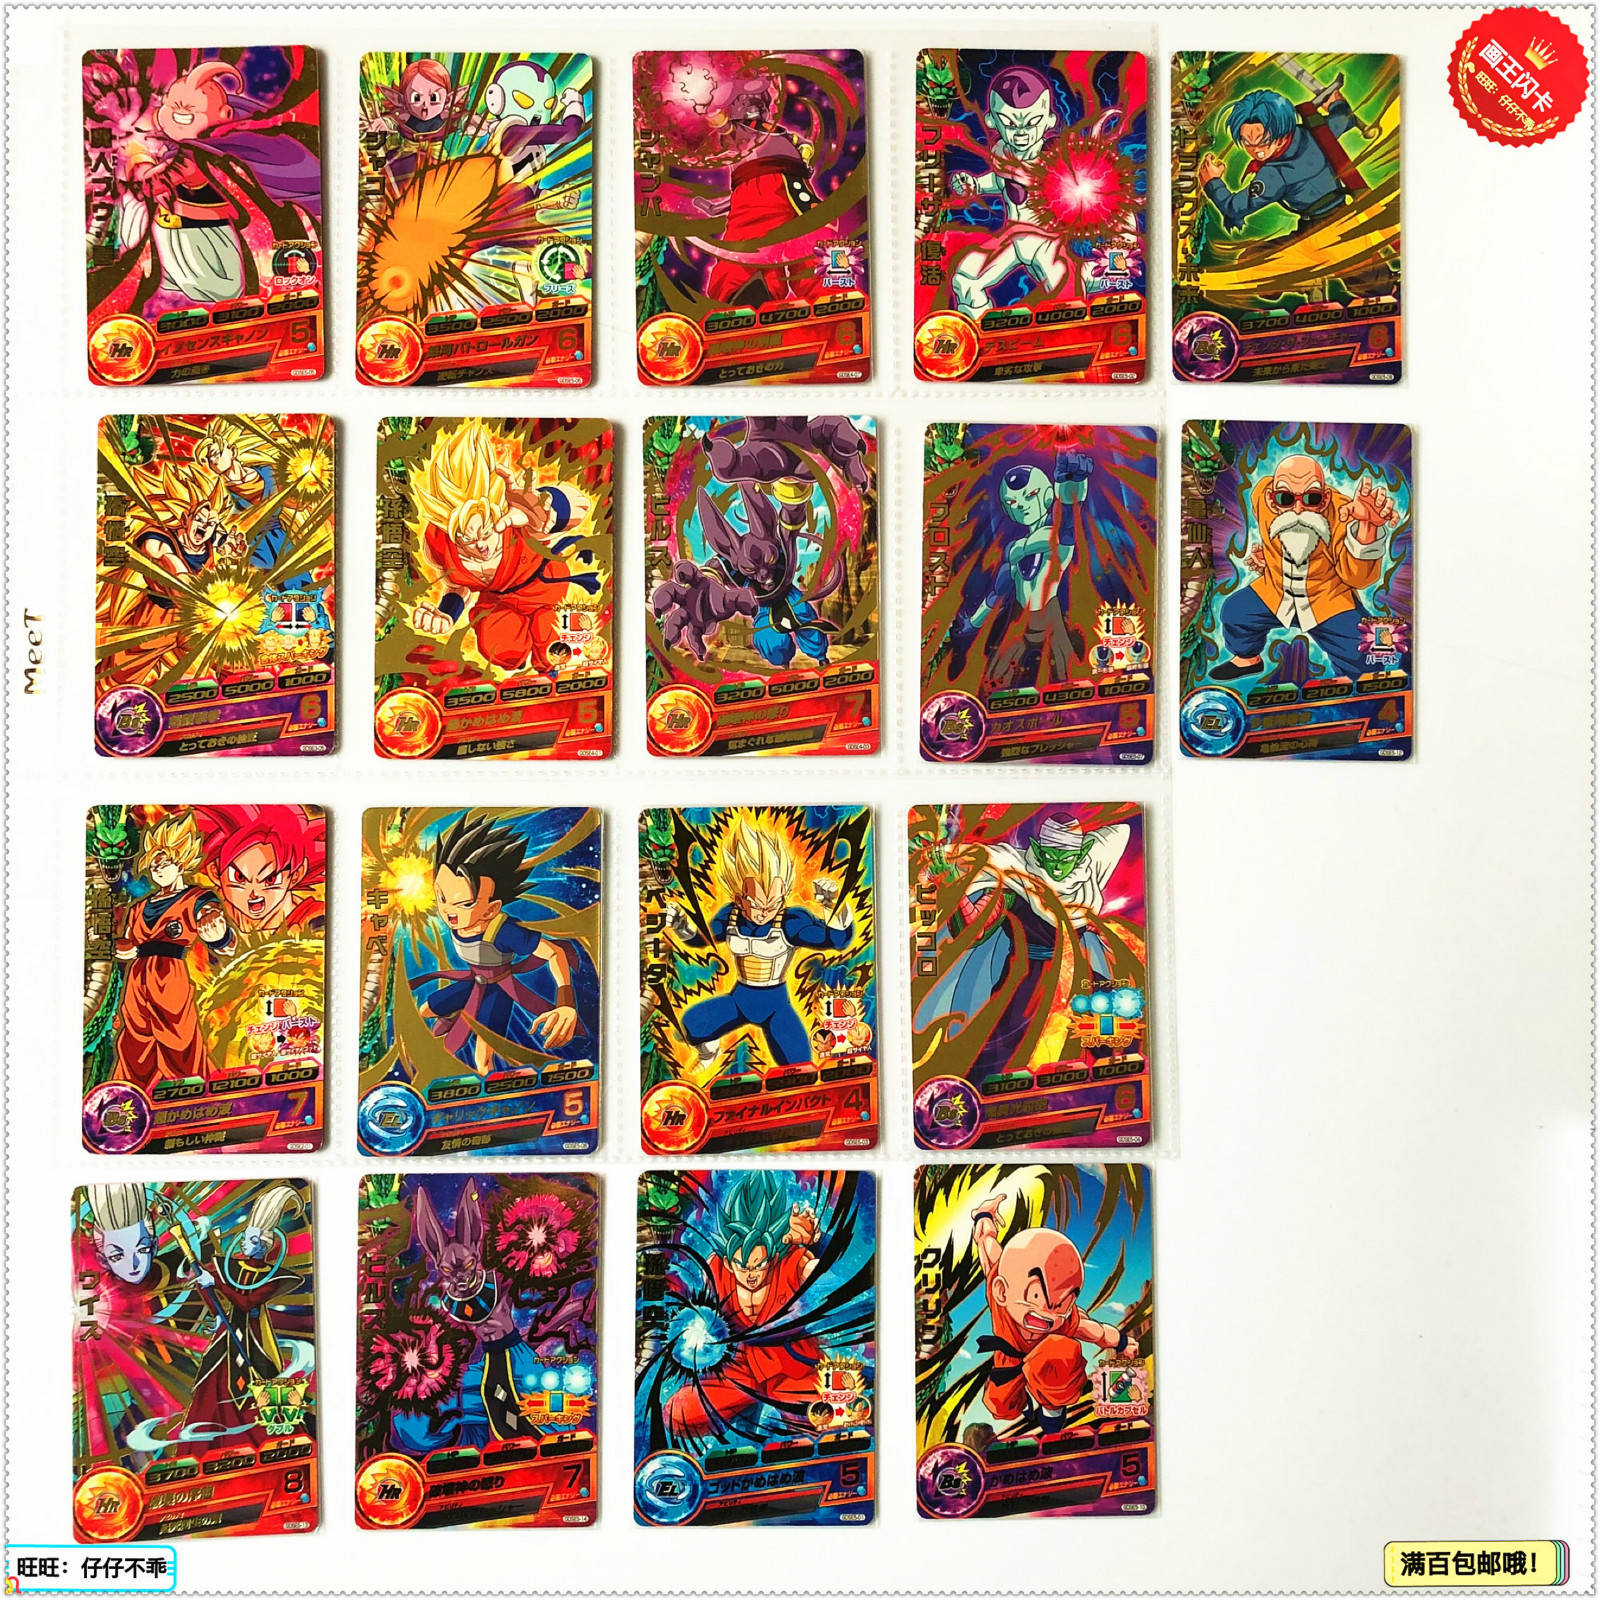 Japan Original Dragon Ball Hero Card GDSE4 5 Goku Toys Hobbies Collectibles Game Collection Anime Cards